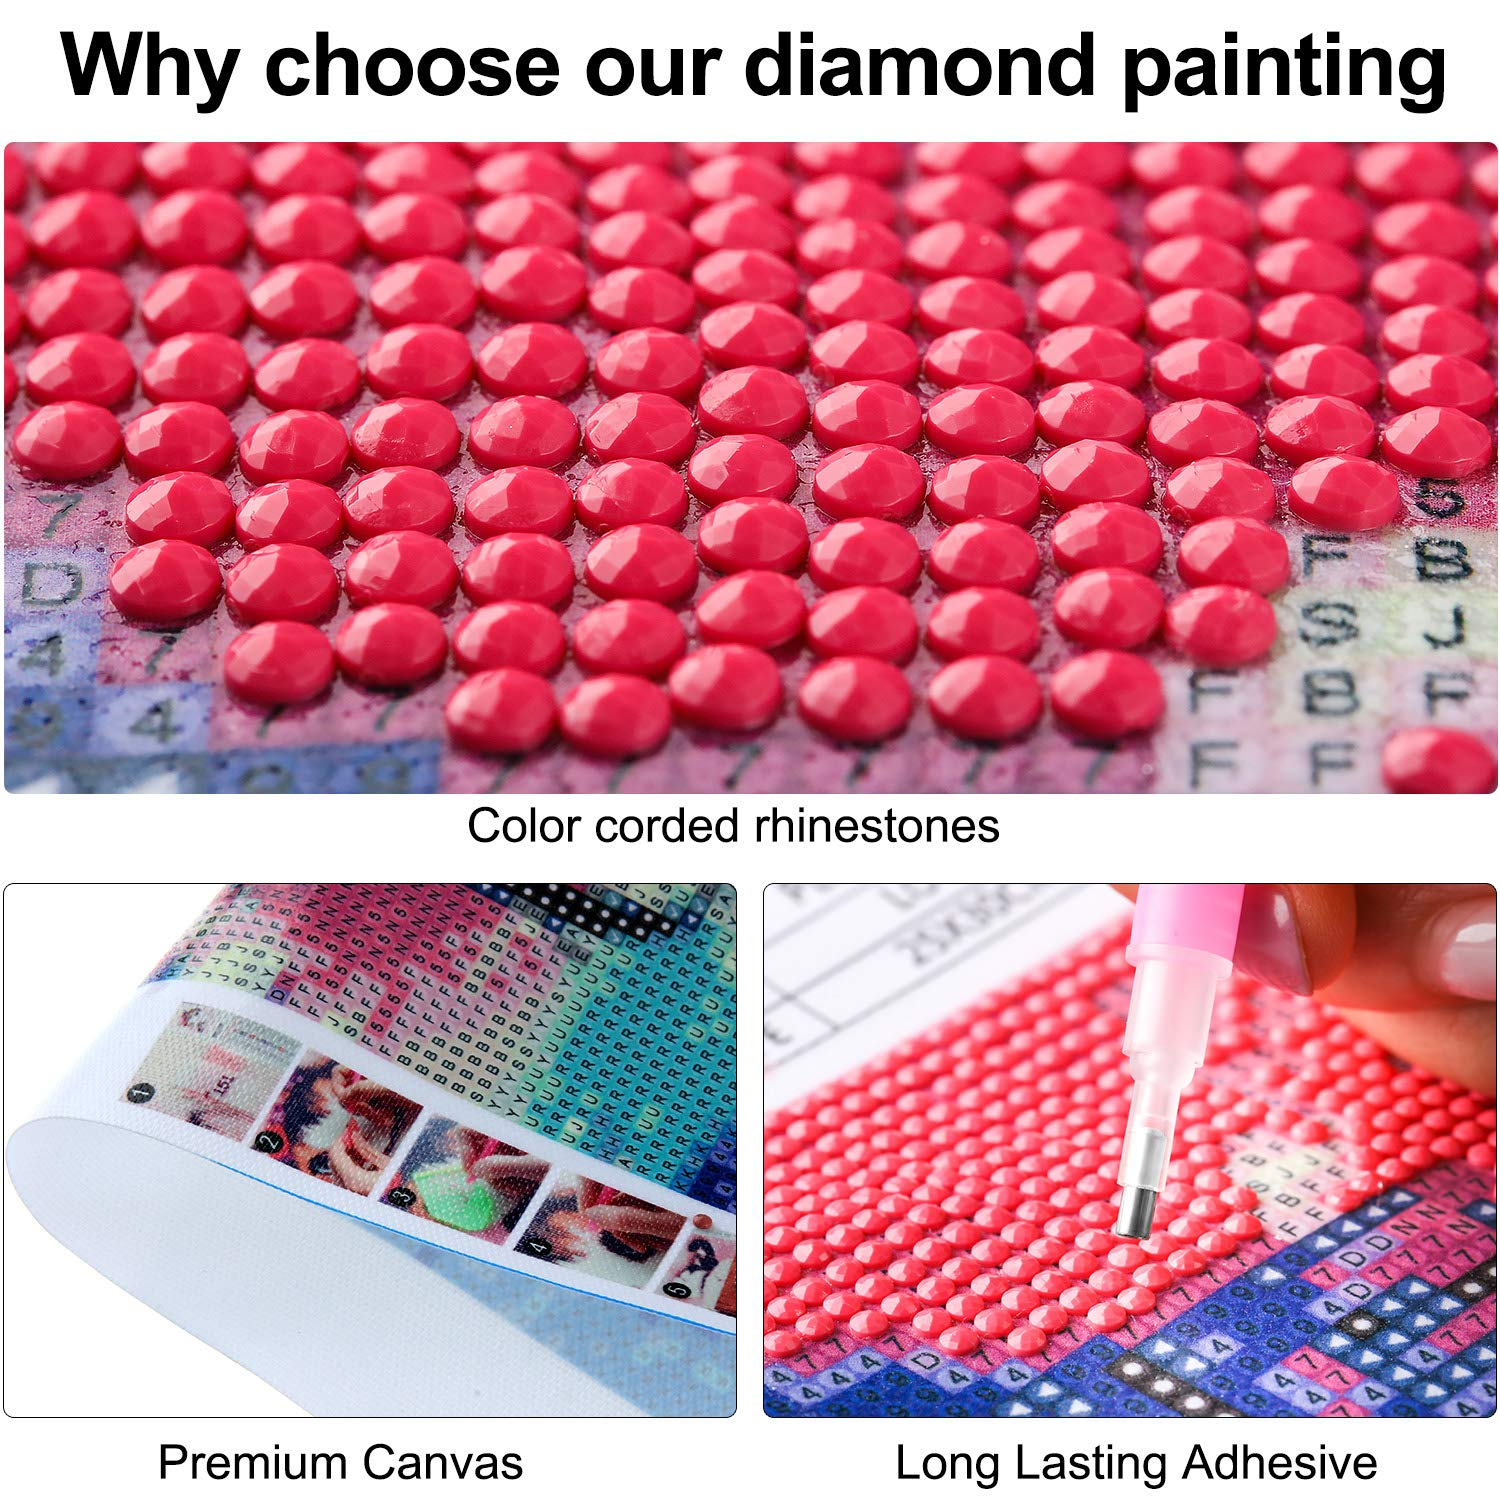 Full Round Drill Number Kits Diamond Rhinestone Painting DIY Romantic Star Positive Words Painting for Home Wall Decoration Crafts 2 Sets 5D Diamond Painting Kits 11.8 x 9.8 Inches